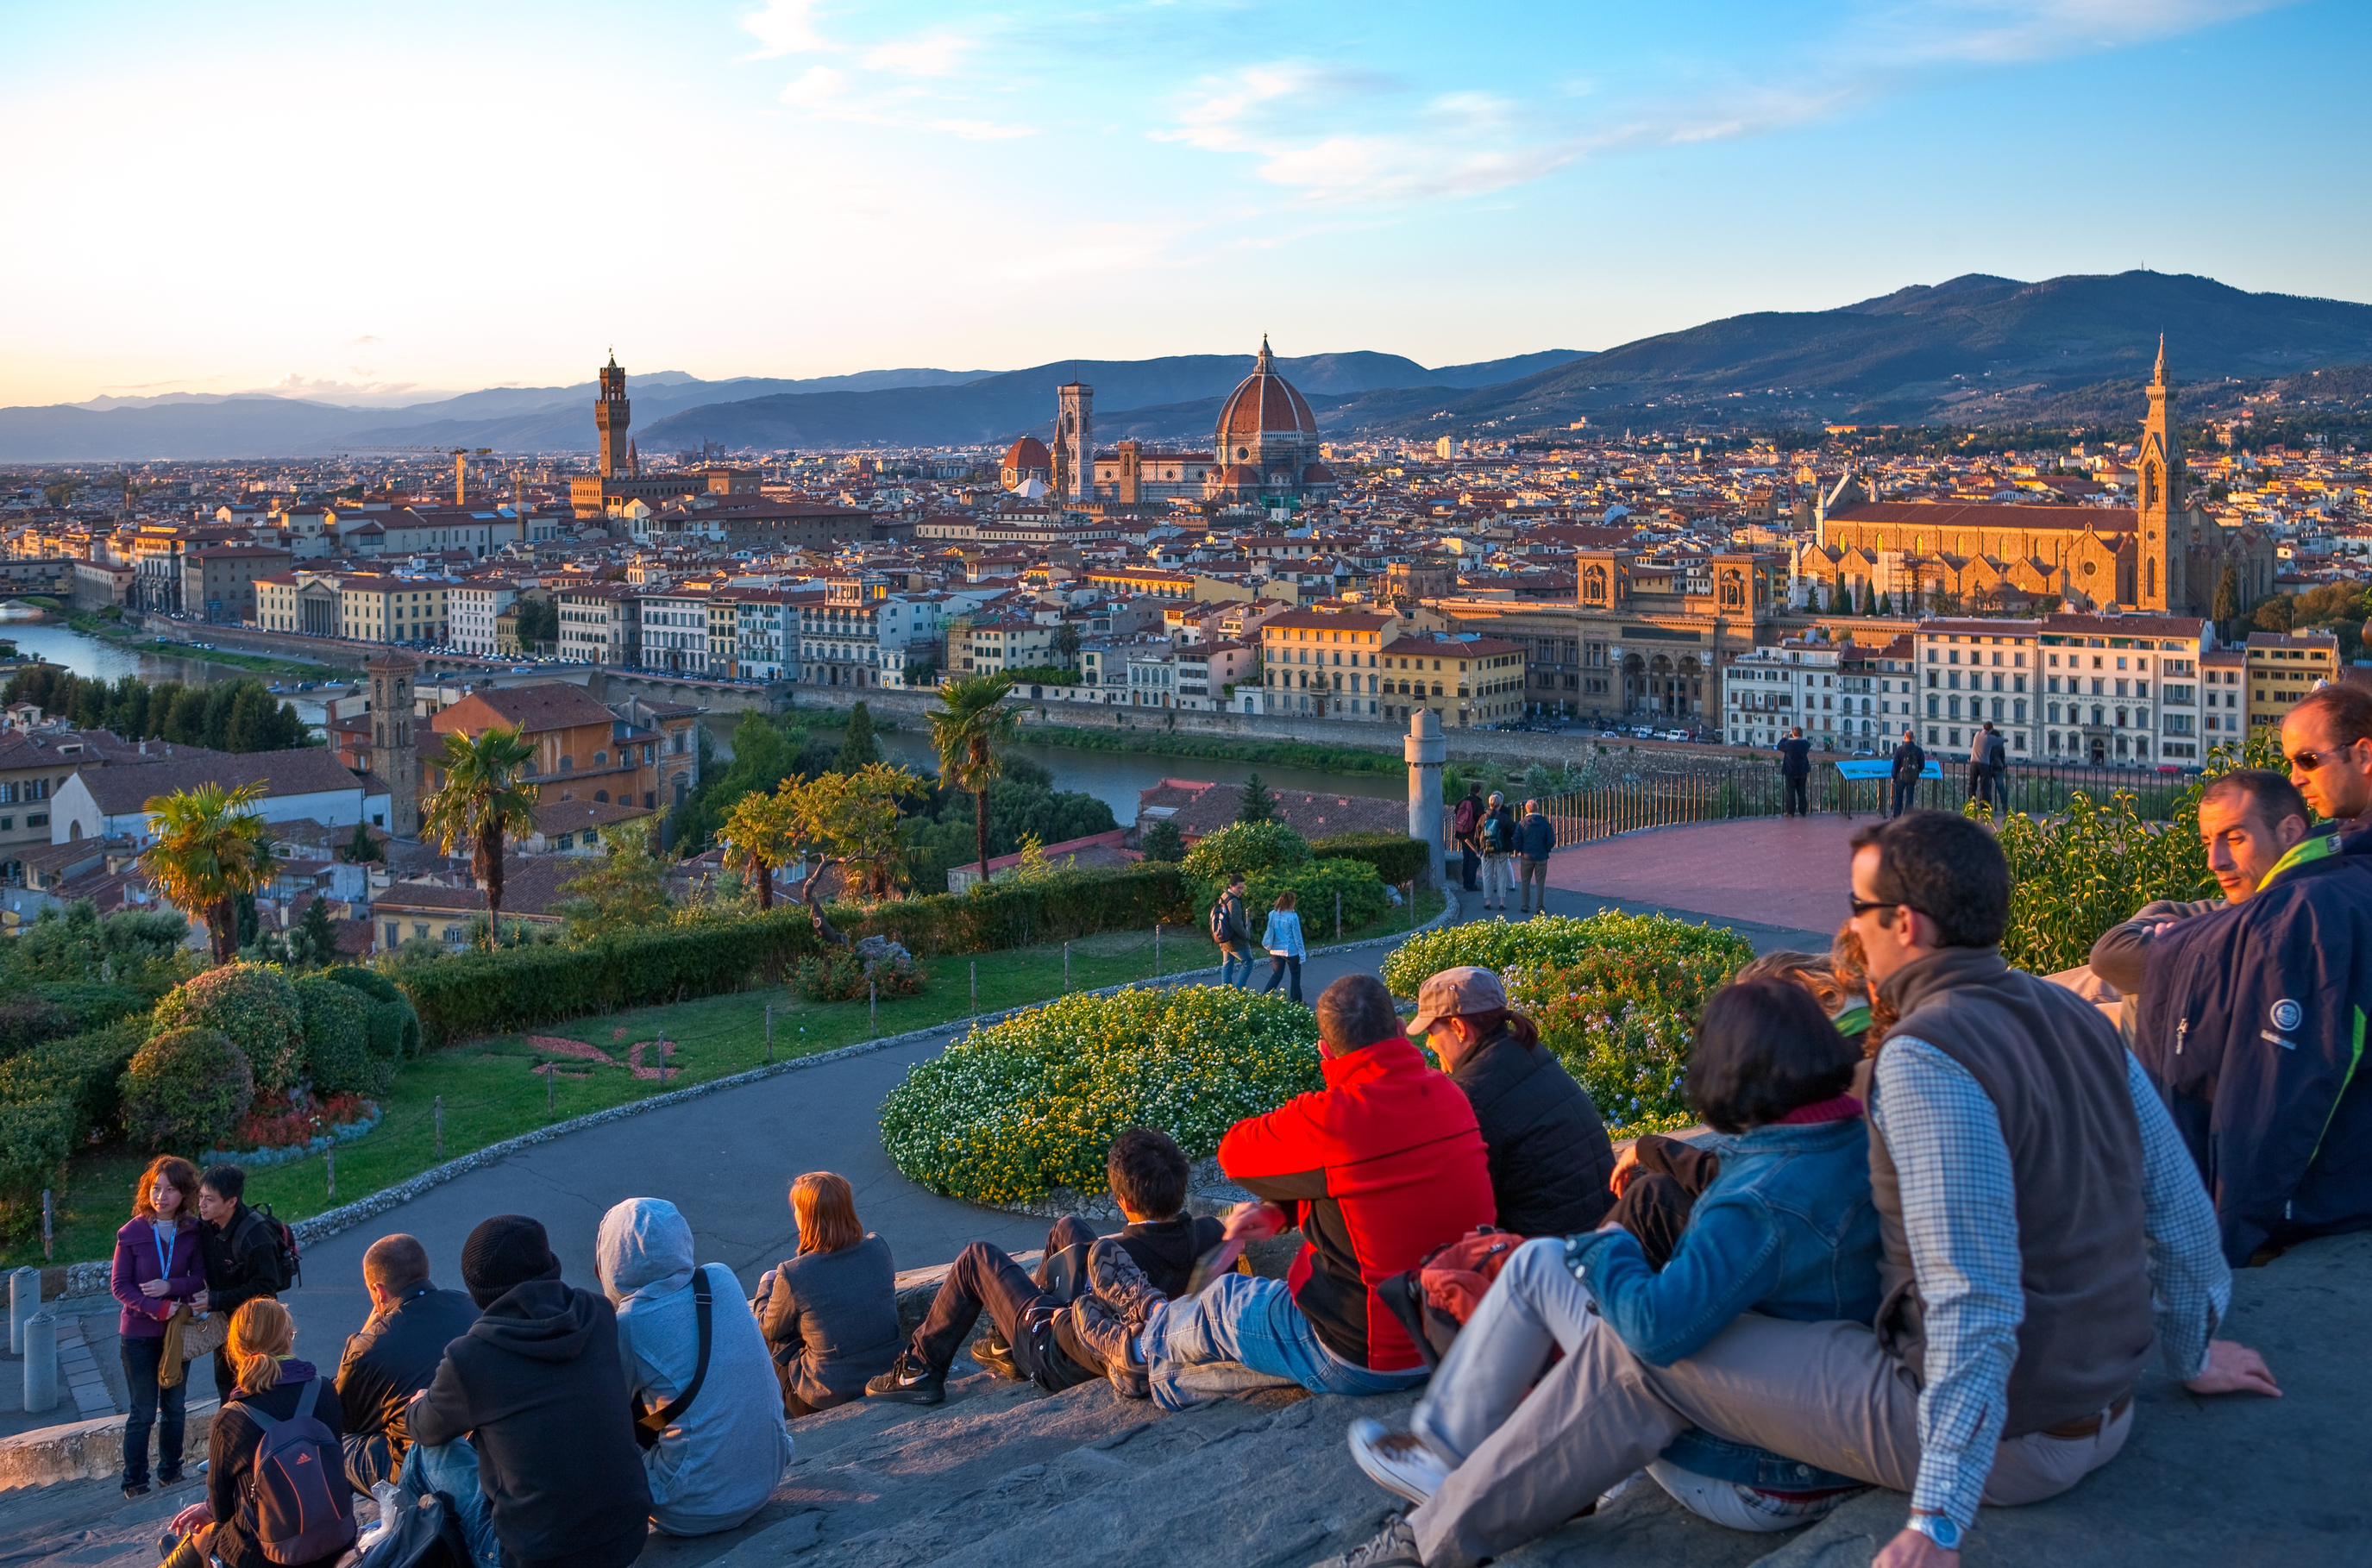 Florence-Italy-Watching-sunset.jpg?mtime=20190107212250#asset:104372